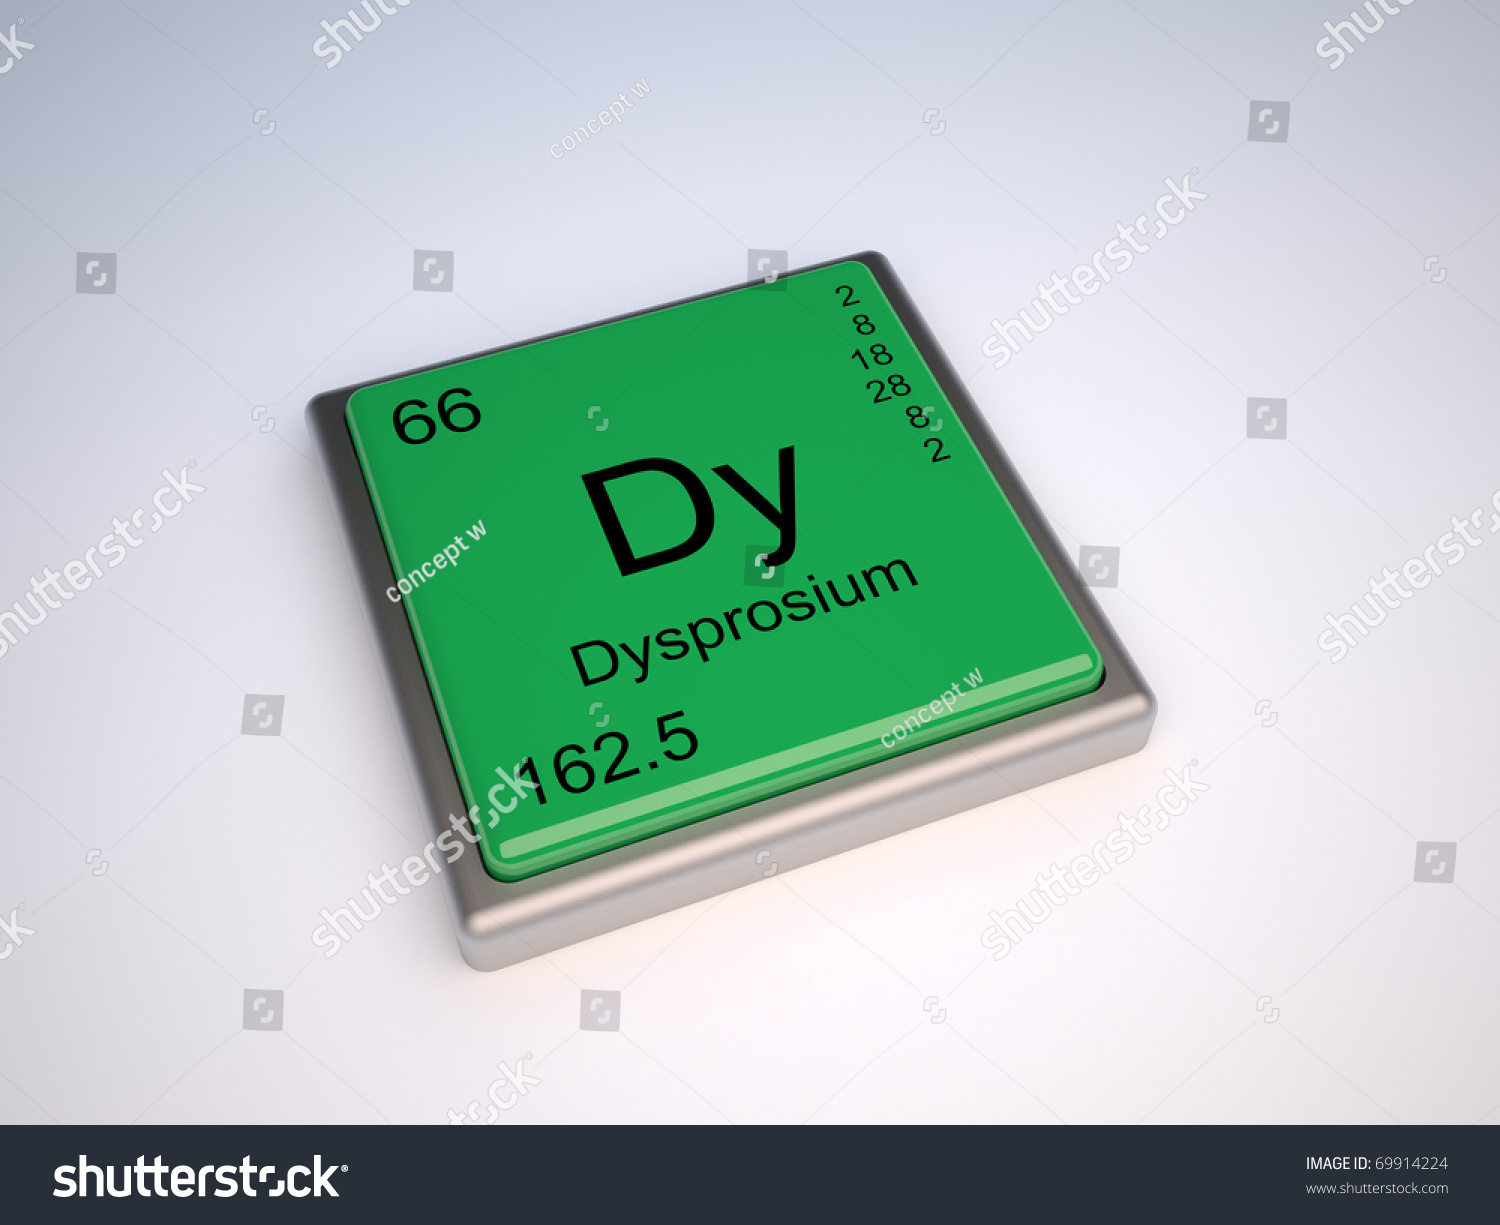 Dysprosium chemical element periodic table symbol stock dysprosium chemical element of the periodic table with symbol dy gamestrikefo Image collections